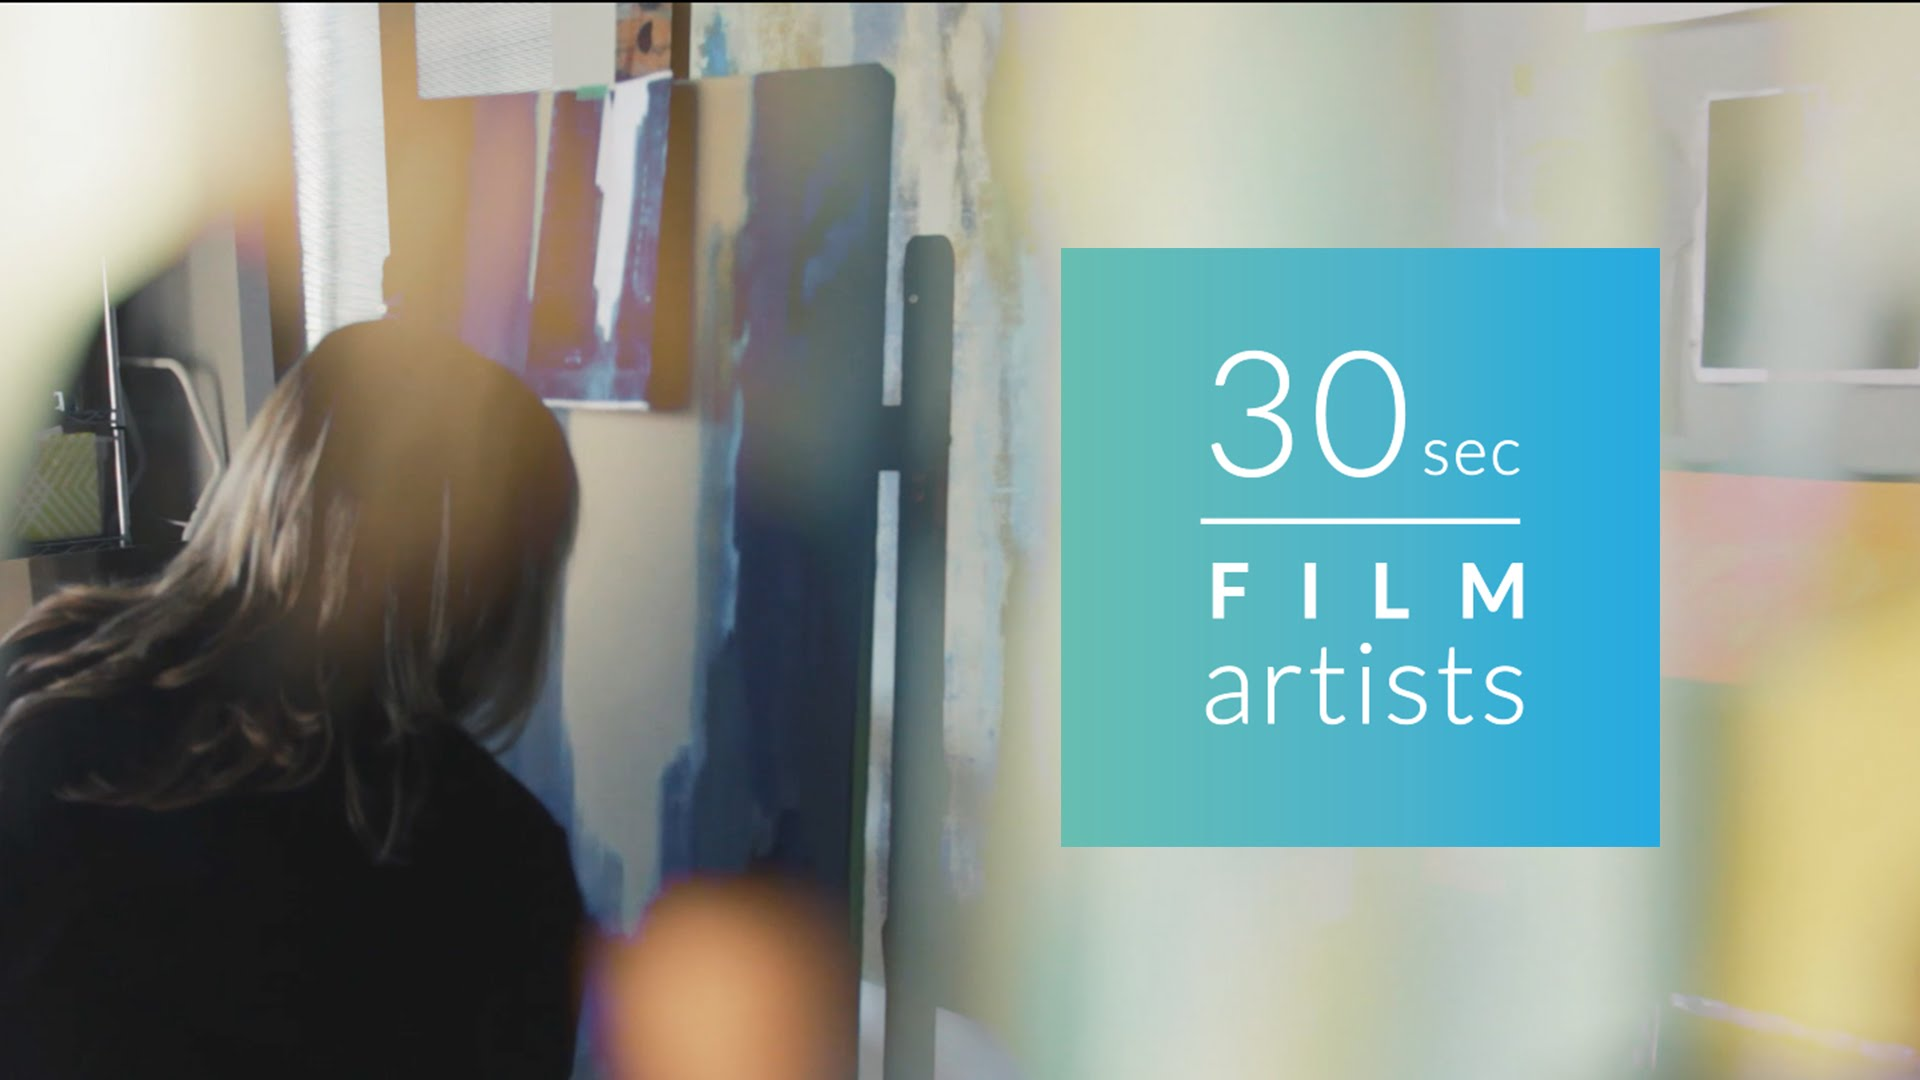 30sec film artists Vol.36 – Rita Vindedzis